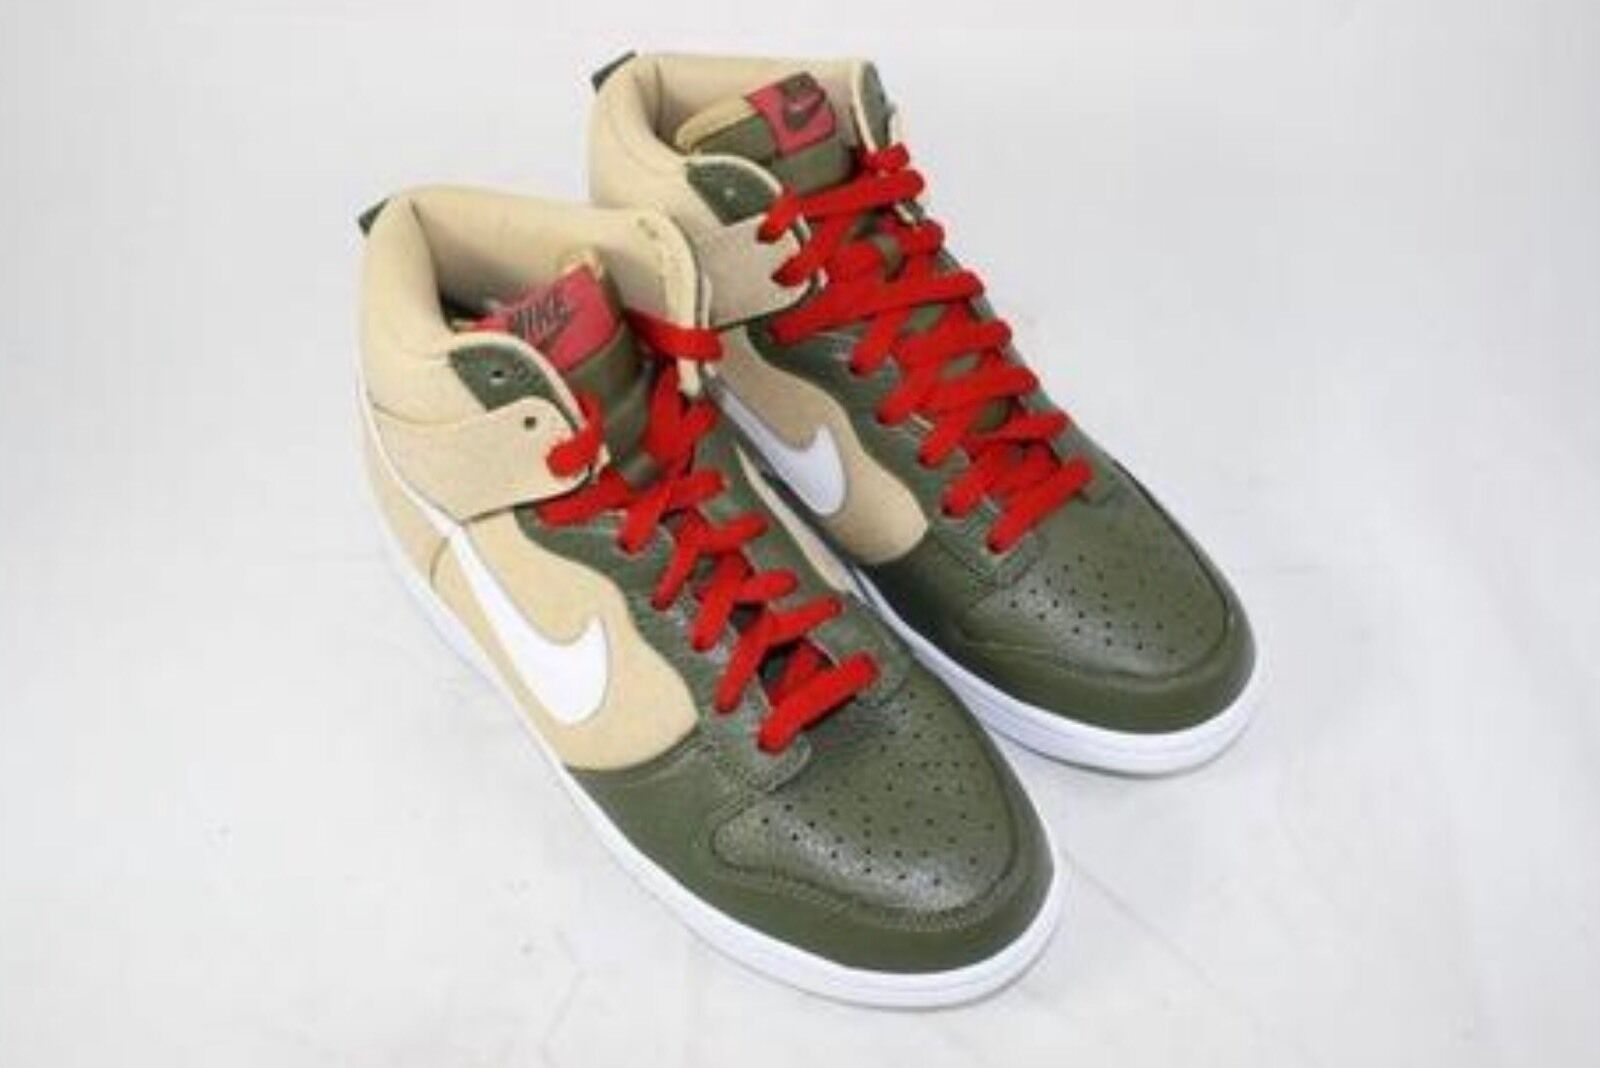 DS MENS NIKE DUNK HIGH Basketball SZ 8.5 NOBOXLID 317982 704 MAX AIR FREE